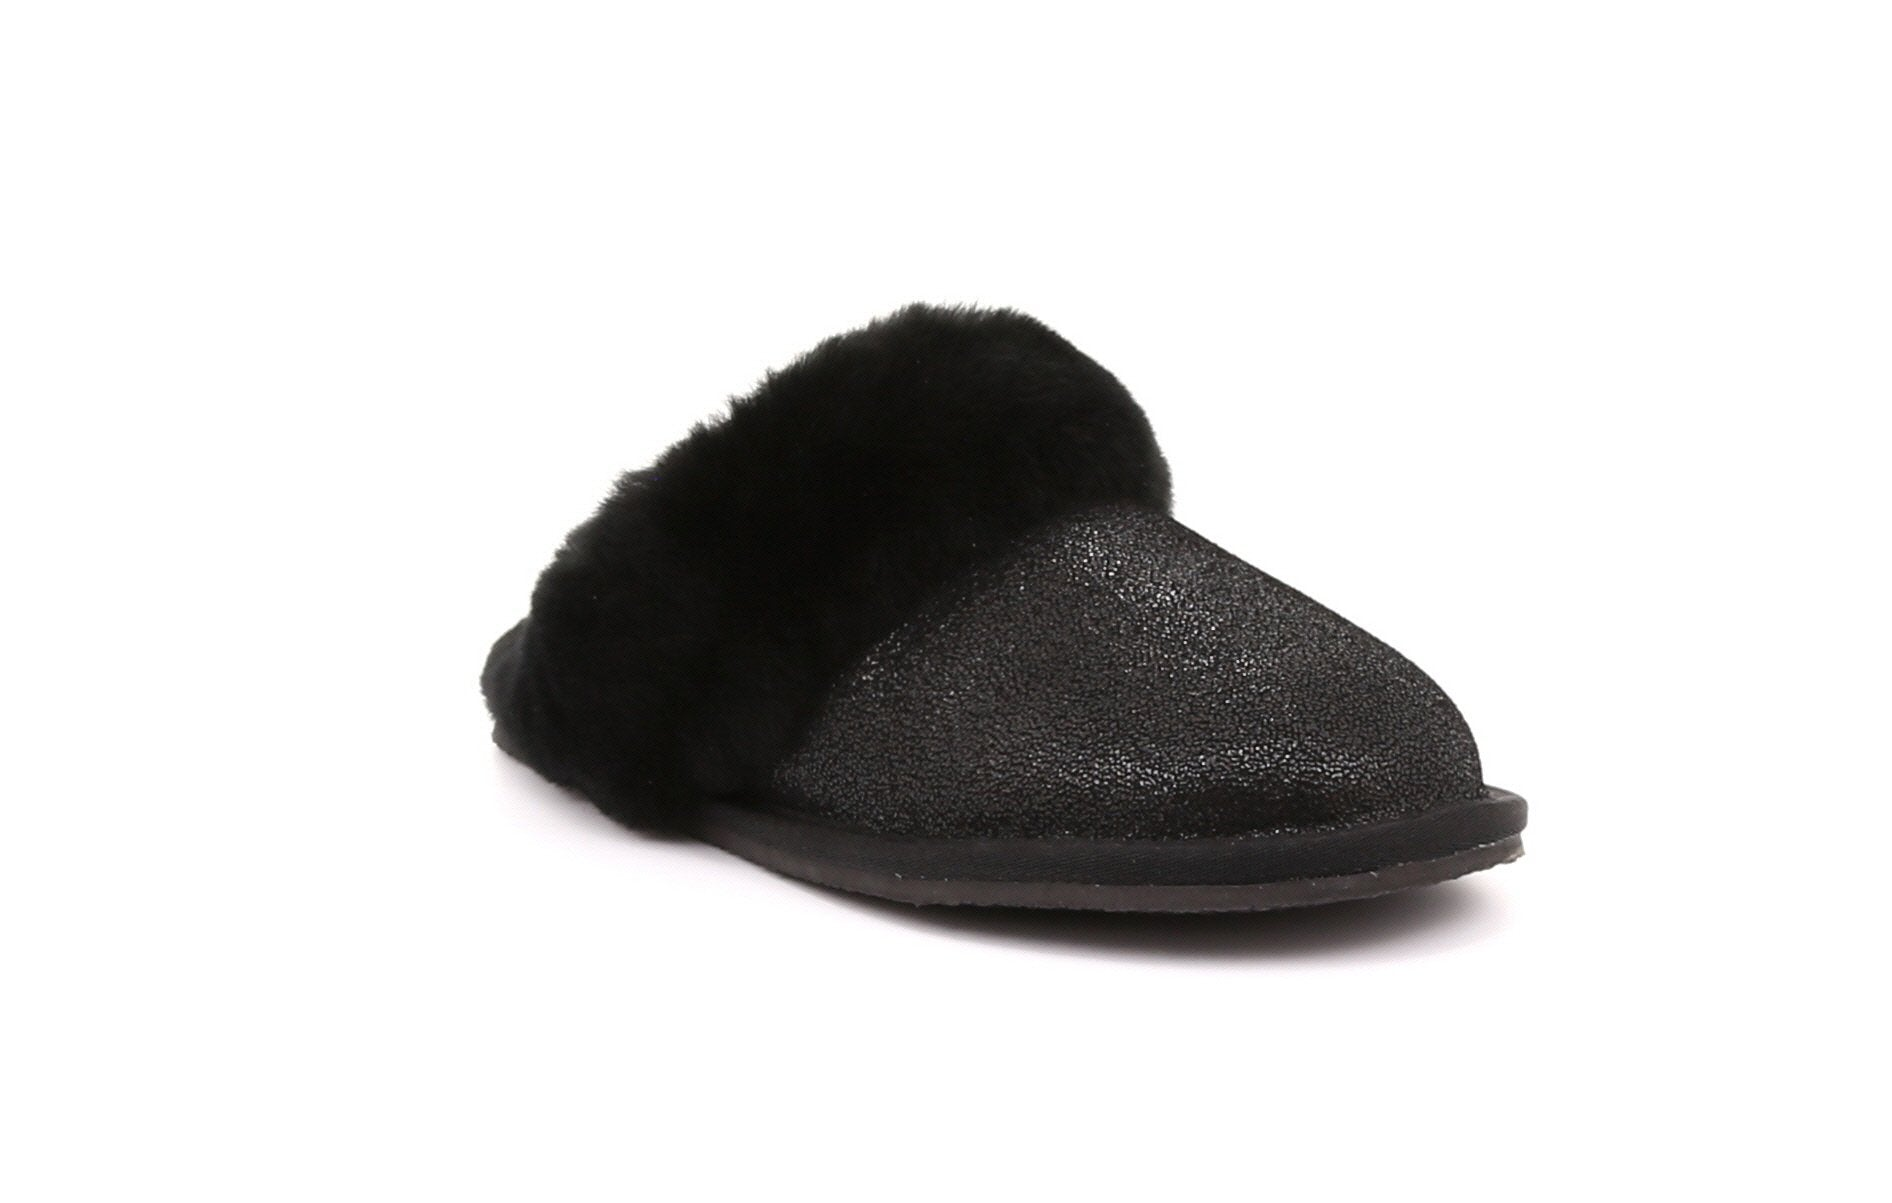 Tanya Women's Shearling Slippers with Thermoplastic Ruber Sole - Alfred Cloutier Ltd. - Canada